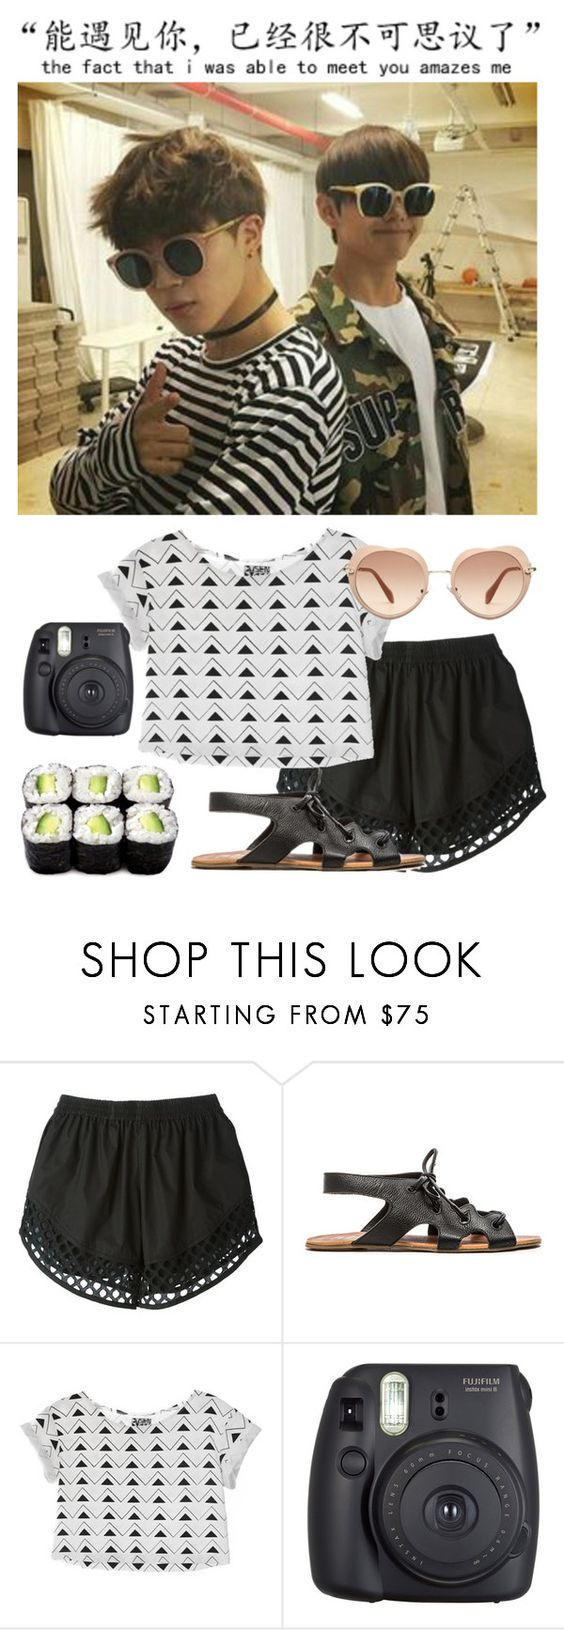 """Hanging Out With Jimin & Taehyung"" by fantasy-lover-0719 ❤ liked on Polyvore featuring Carven, Matisse, Dusen Dusen, Fuji and Miu Miu"